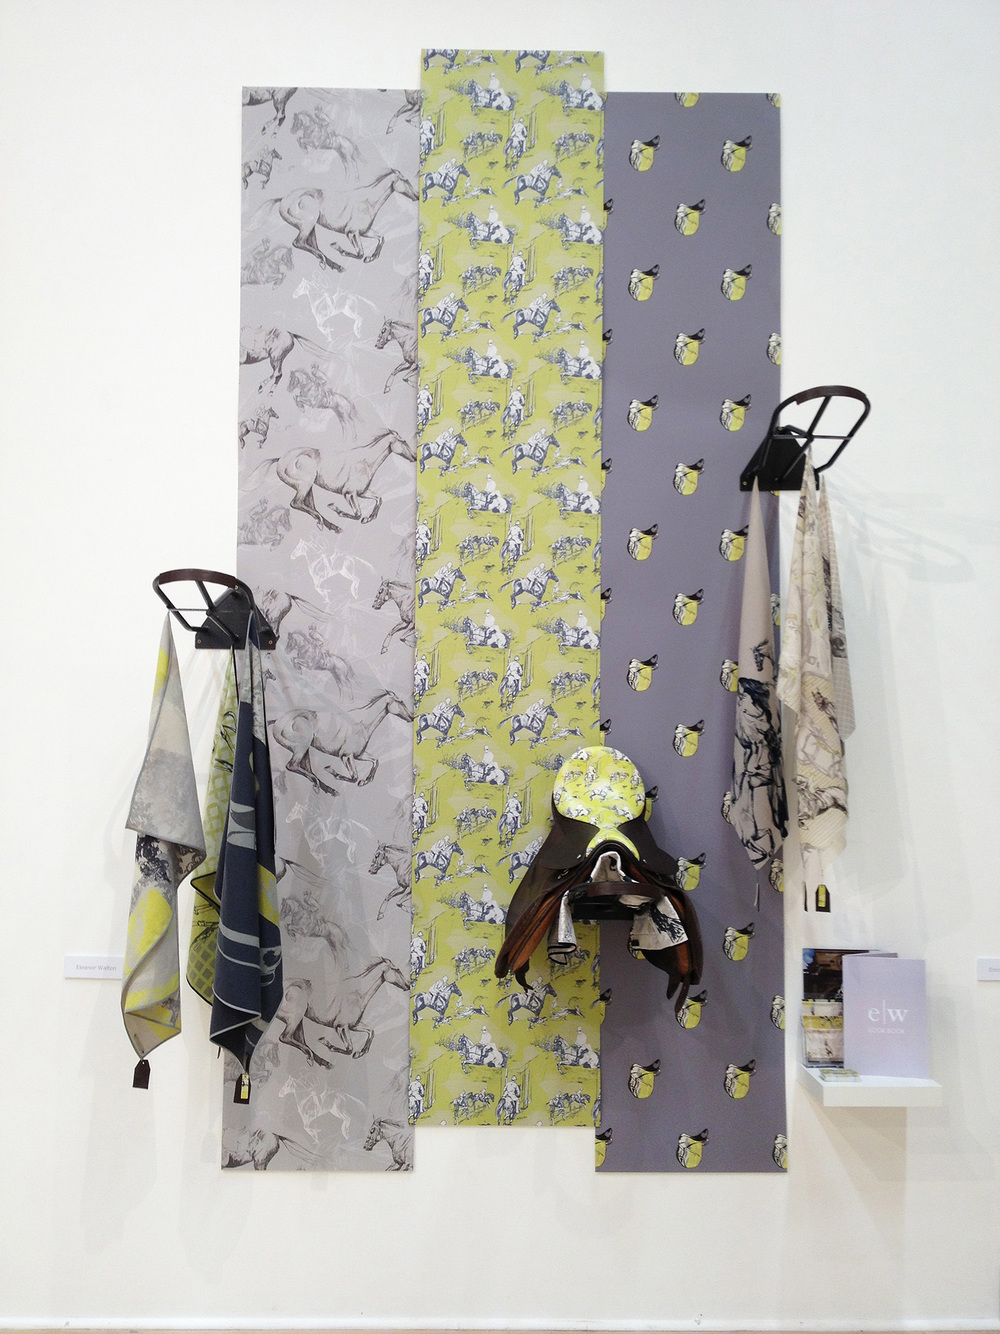 Ellie Walton- Printed Textile Designer www.eleanorwalton.moonfruit.com Ellie's 'Saddle up' range is right on trend for Autumn/WInter 2014. I love the use of accent colour and her display using saddle racks.